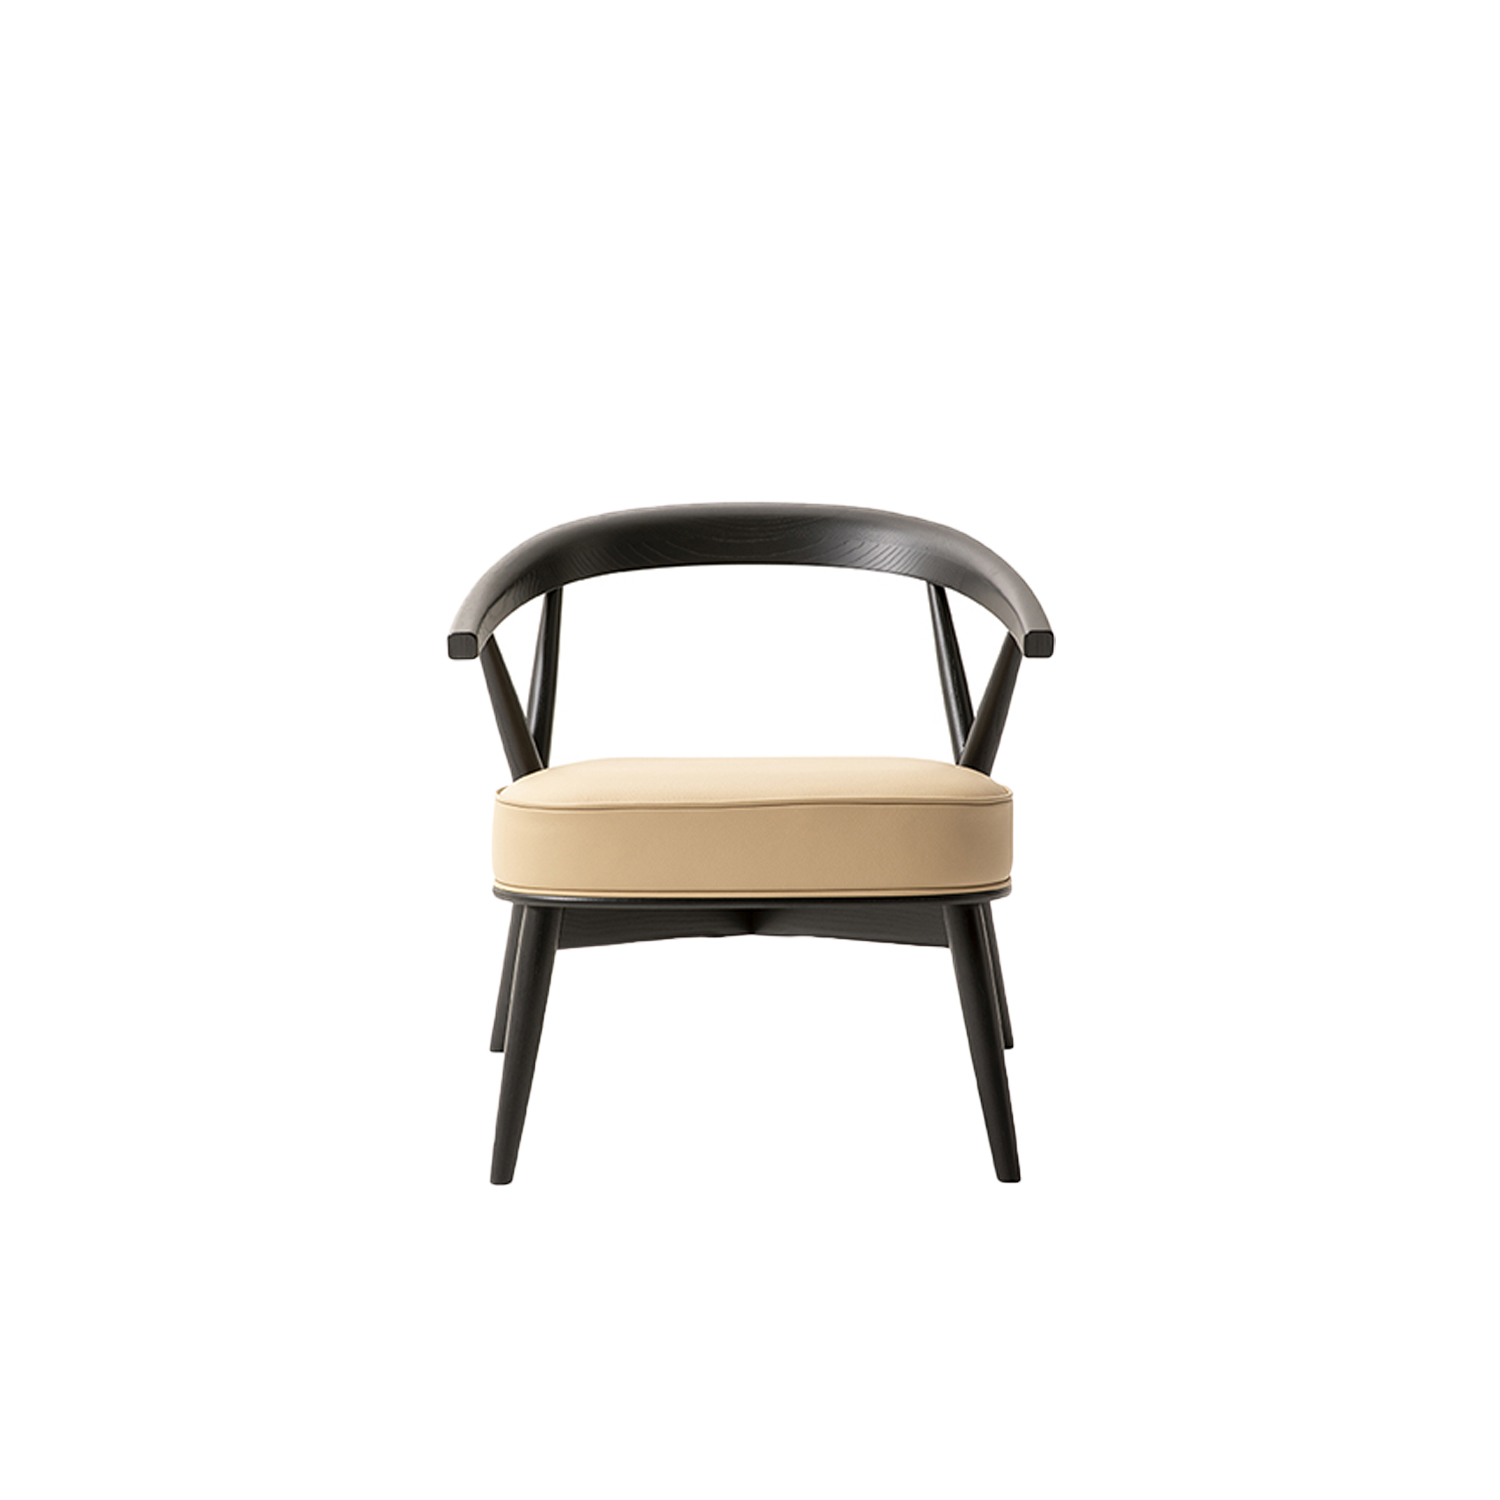 Newood Relax Light Lounge Chair - The Newood Relax Light chair, by BrogliatoTraverso, is an elegant interpretation of the Newood chair, but this version is lighter due to the elimination of the eight rods that characterized the original backrest.